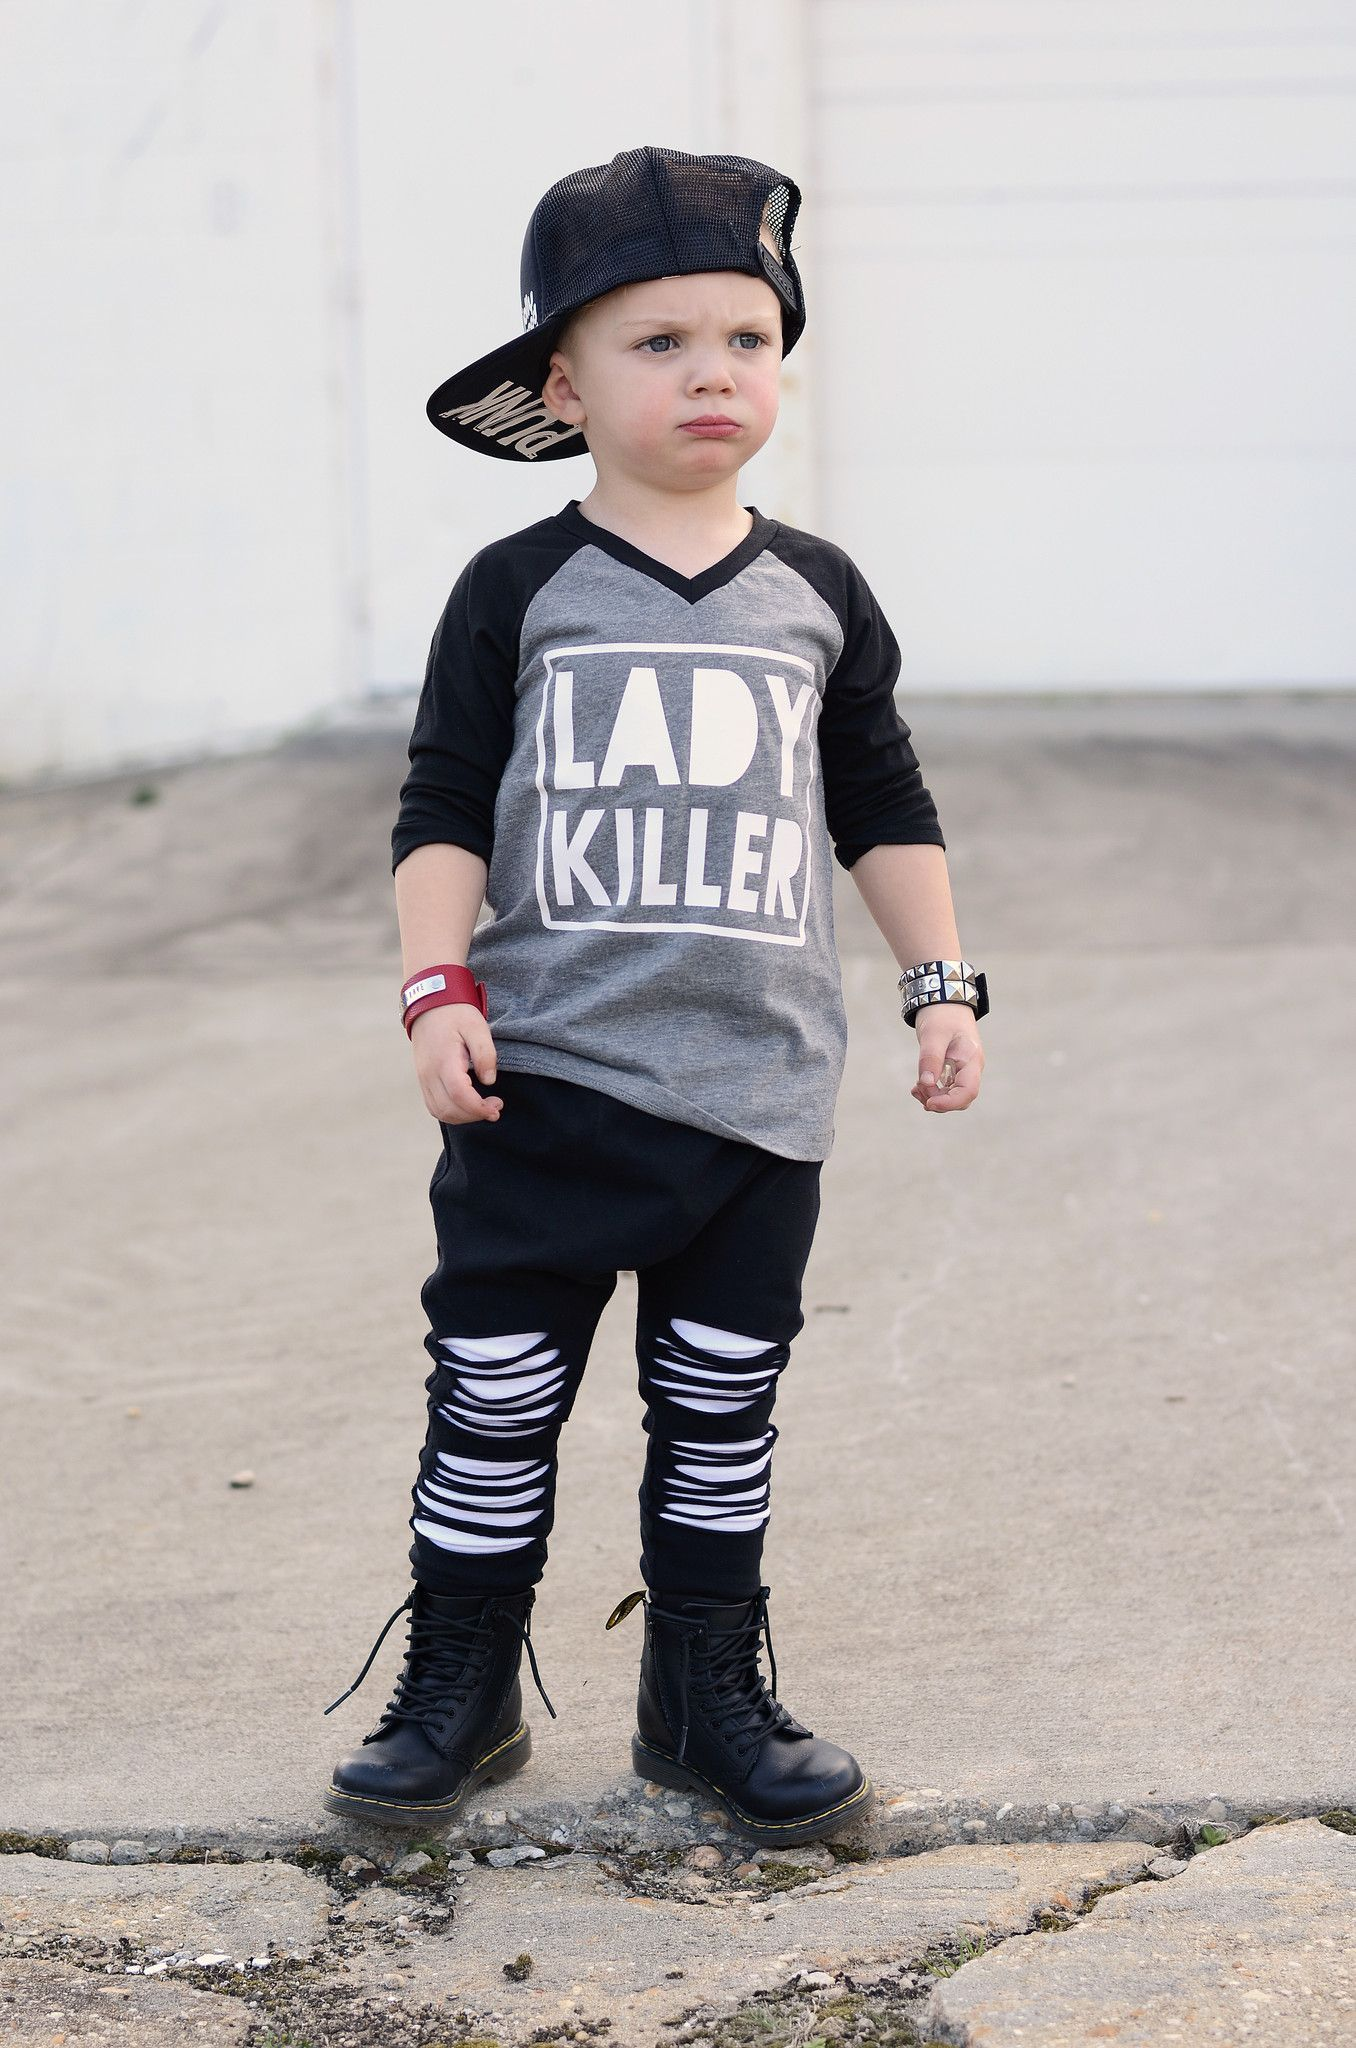 Lady killer shirt, trendy boy clothes, urban style boy clothes, street style